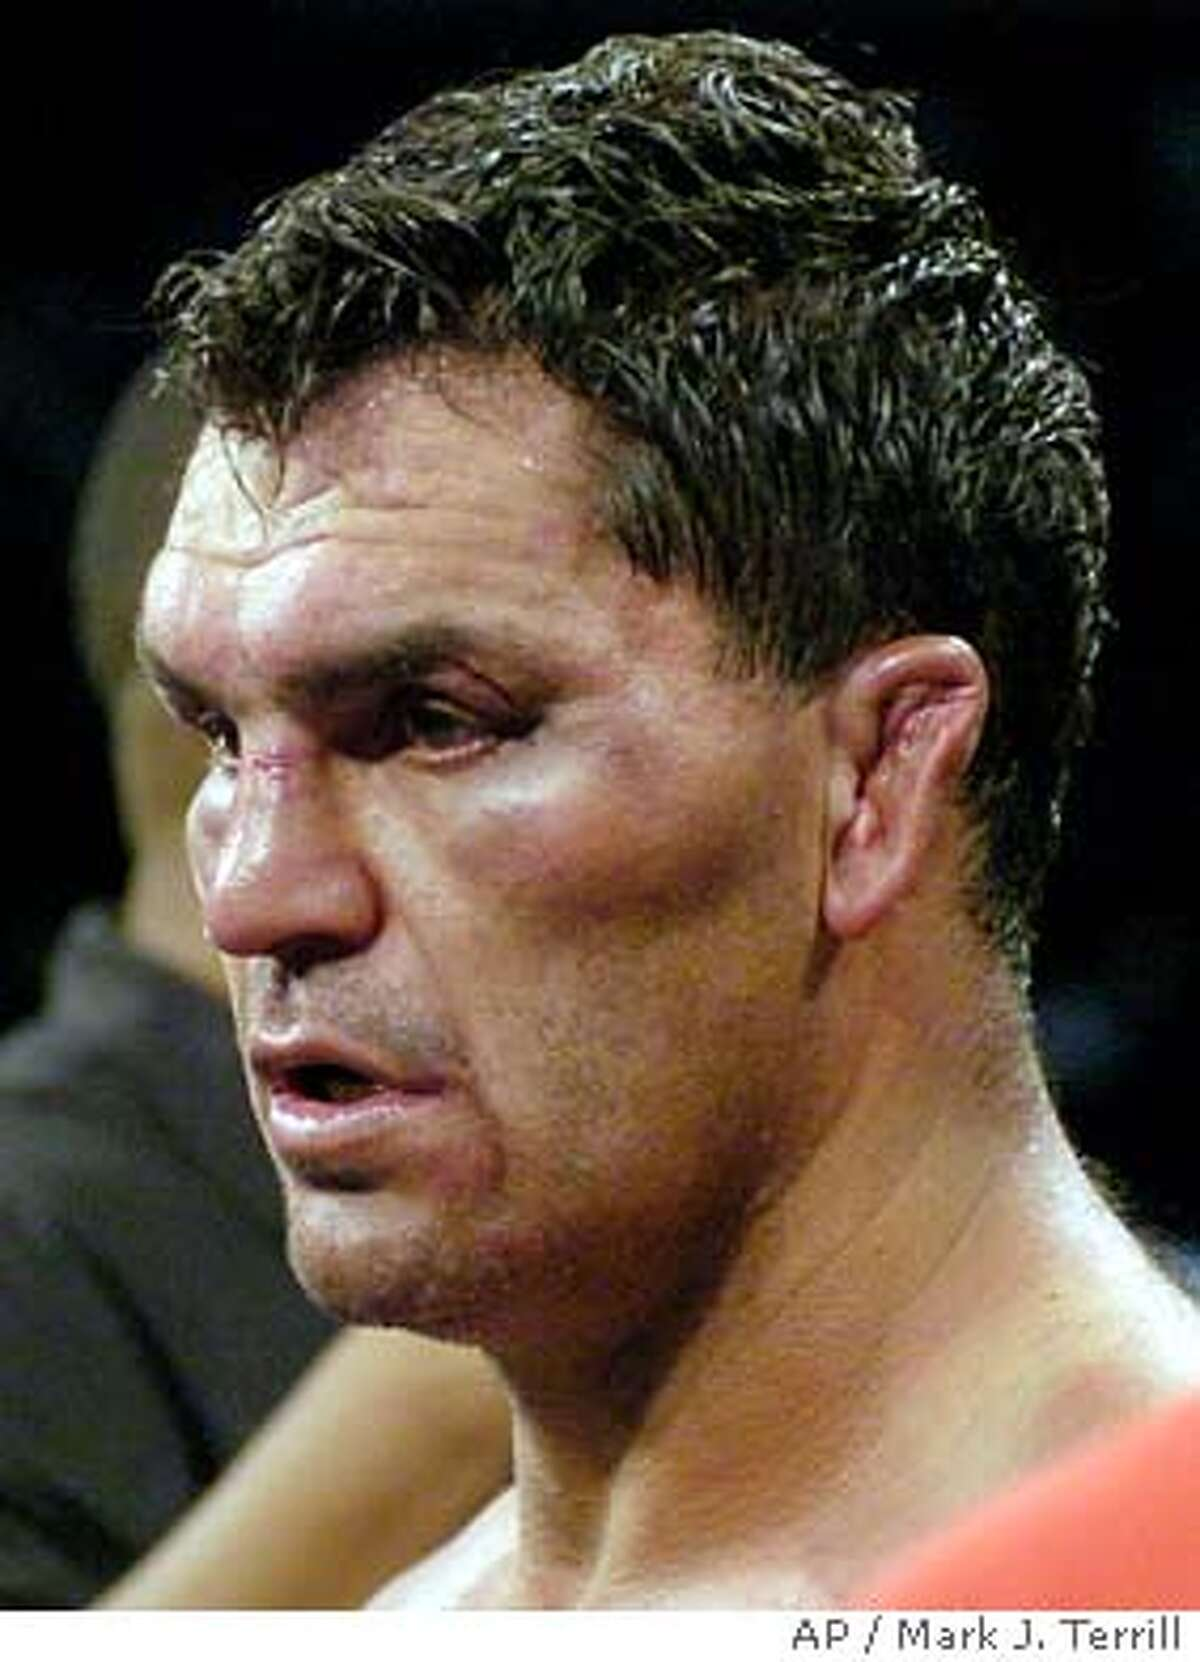 Corrie Sanders walks away with an injured ear after losing his 12-round WBC heavyweight championship bout against Vitali Klitschko in Los Angeles, Saturday, April 24, 2004. Klitschko won the fight by TKO in the eighth round. (AP Photo/Mark J. Terrill)